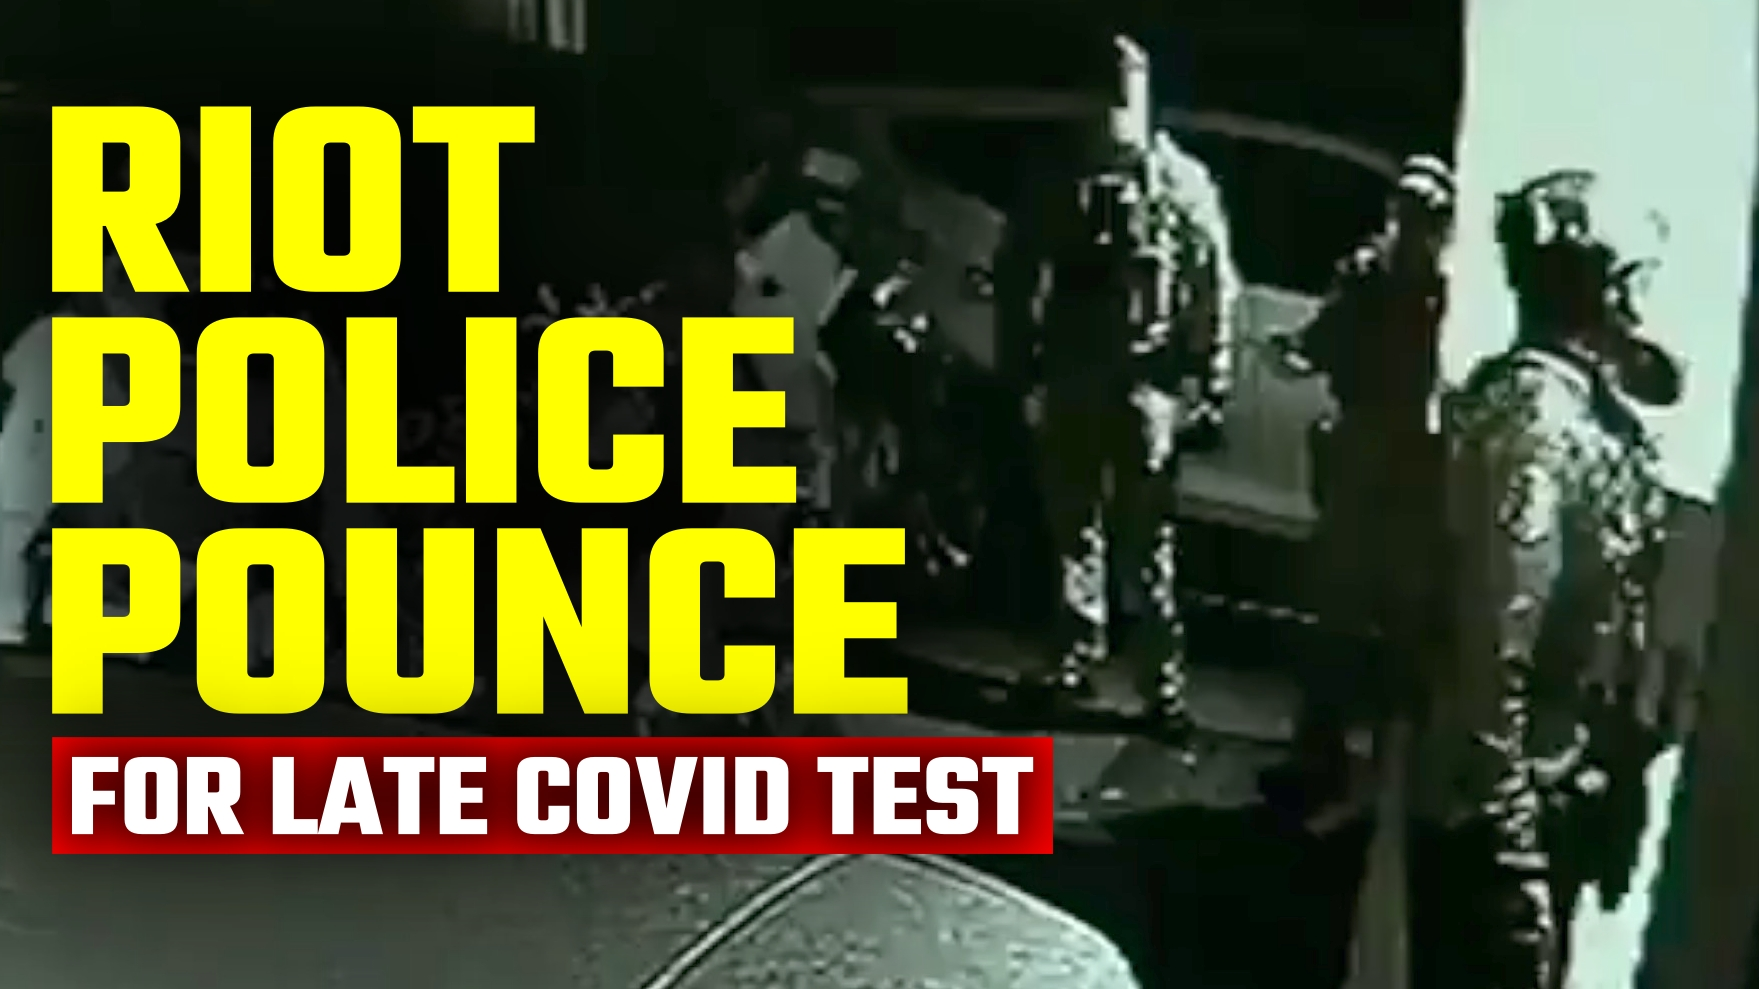 OUT OF CONTROL: Riot police storm family home because dad didn't get Covid test fast enough